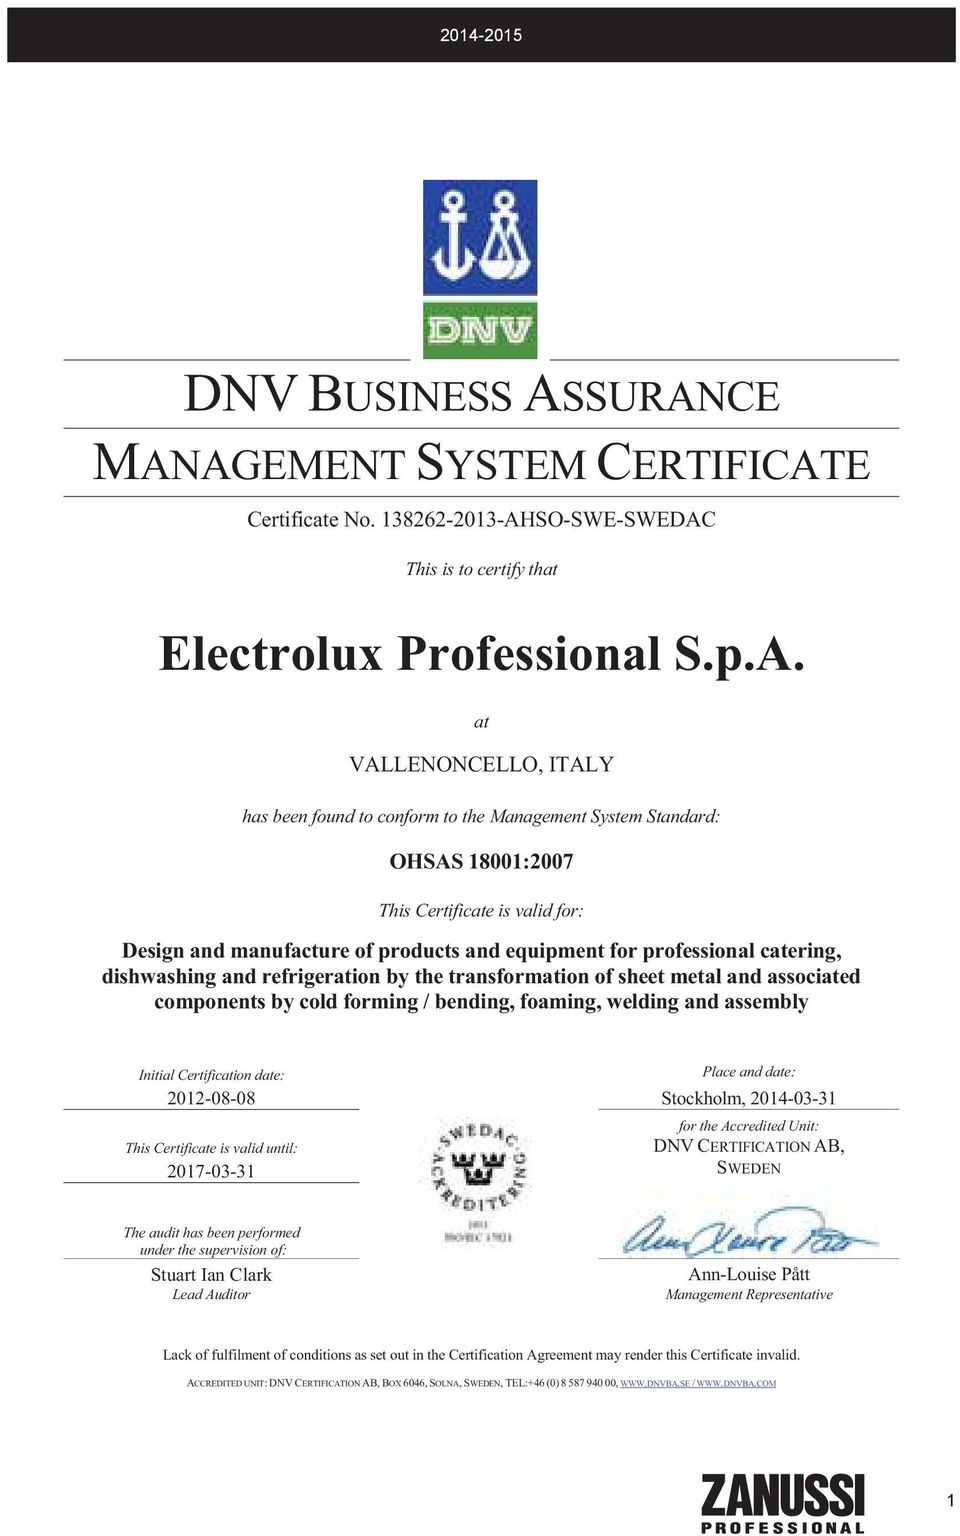 Management System Standard: OHSAS 18001:2007 This Certificate is valid for: Design and manufacture of products and equipment for professional catering, dishwashing and refrigeration by the